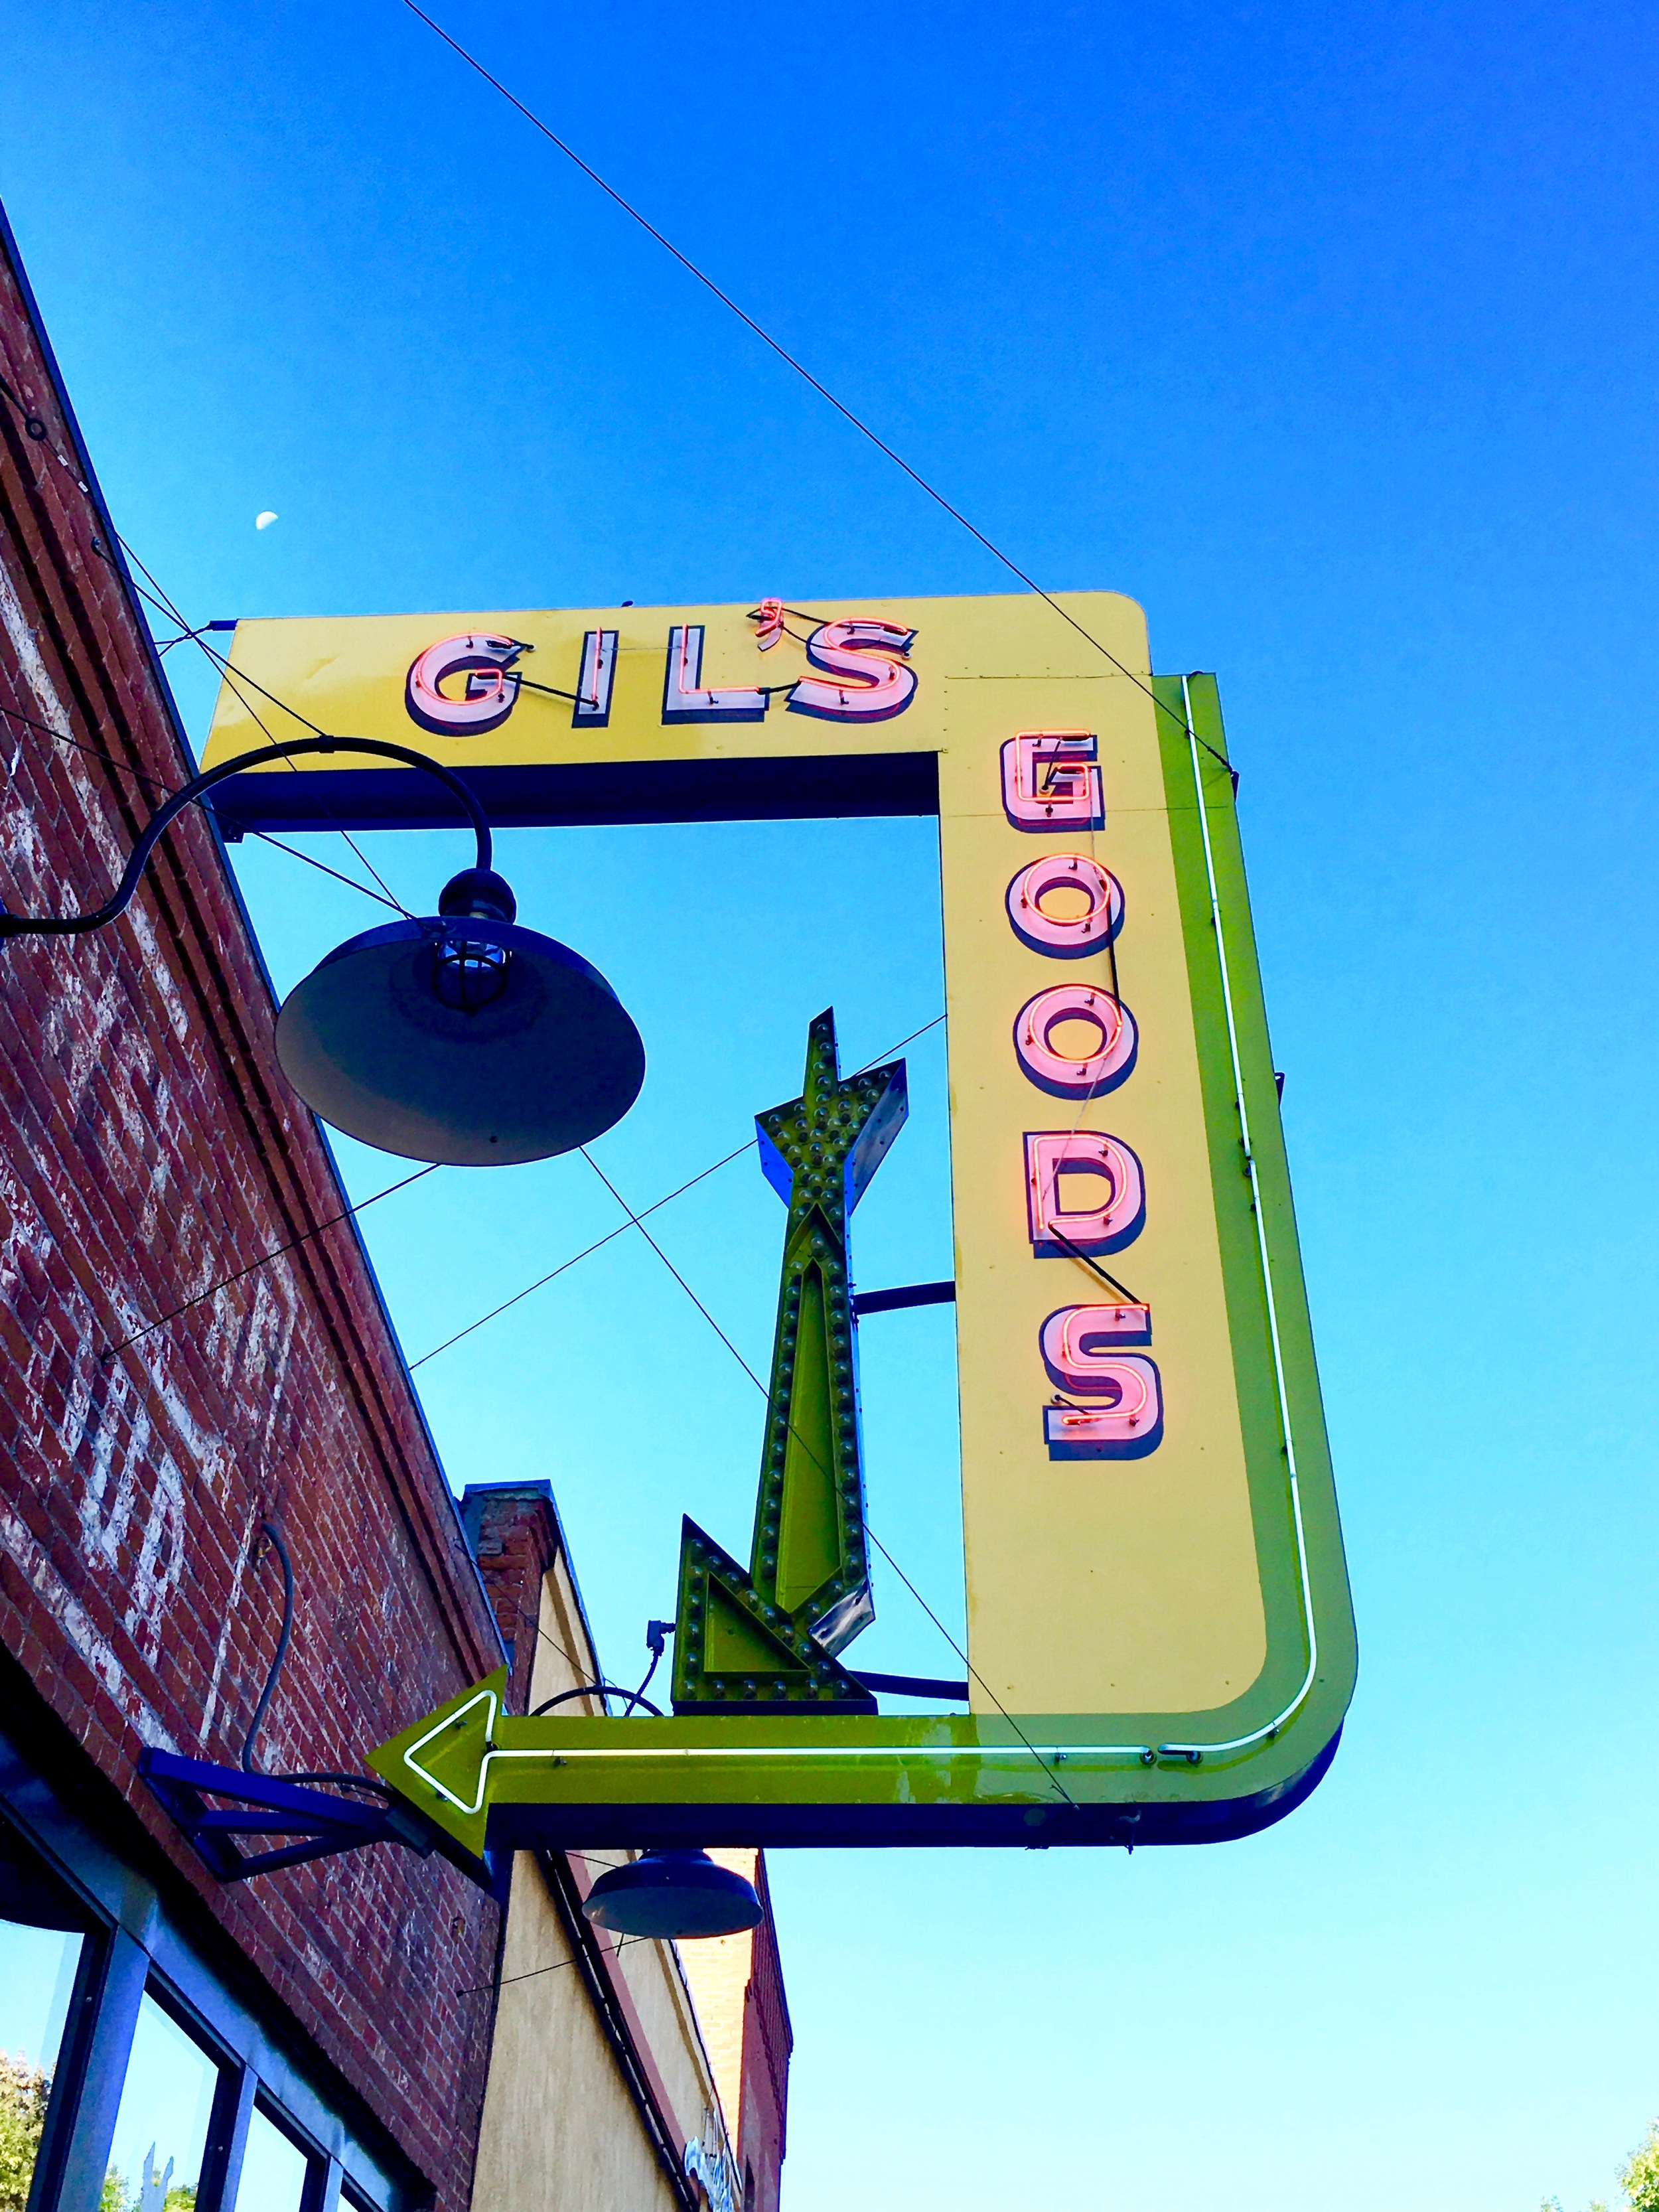 From our home, Livingston is a short, interesting scenic drive across Jackson Creek. Before a hike at Pine Creek, we stopped at Gil's Cafe in Livingston for a bite. It's homey, casual, and my breakfast sandwich was just right.